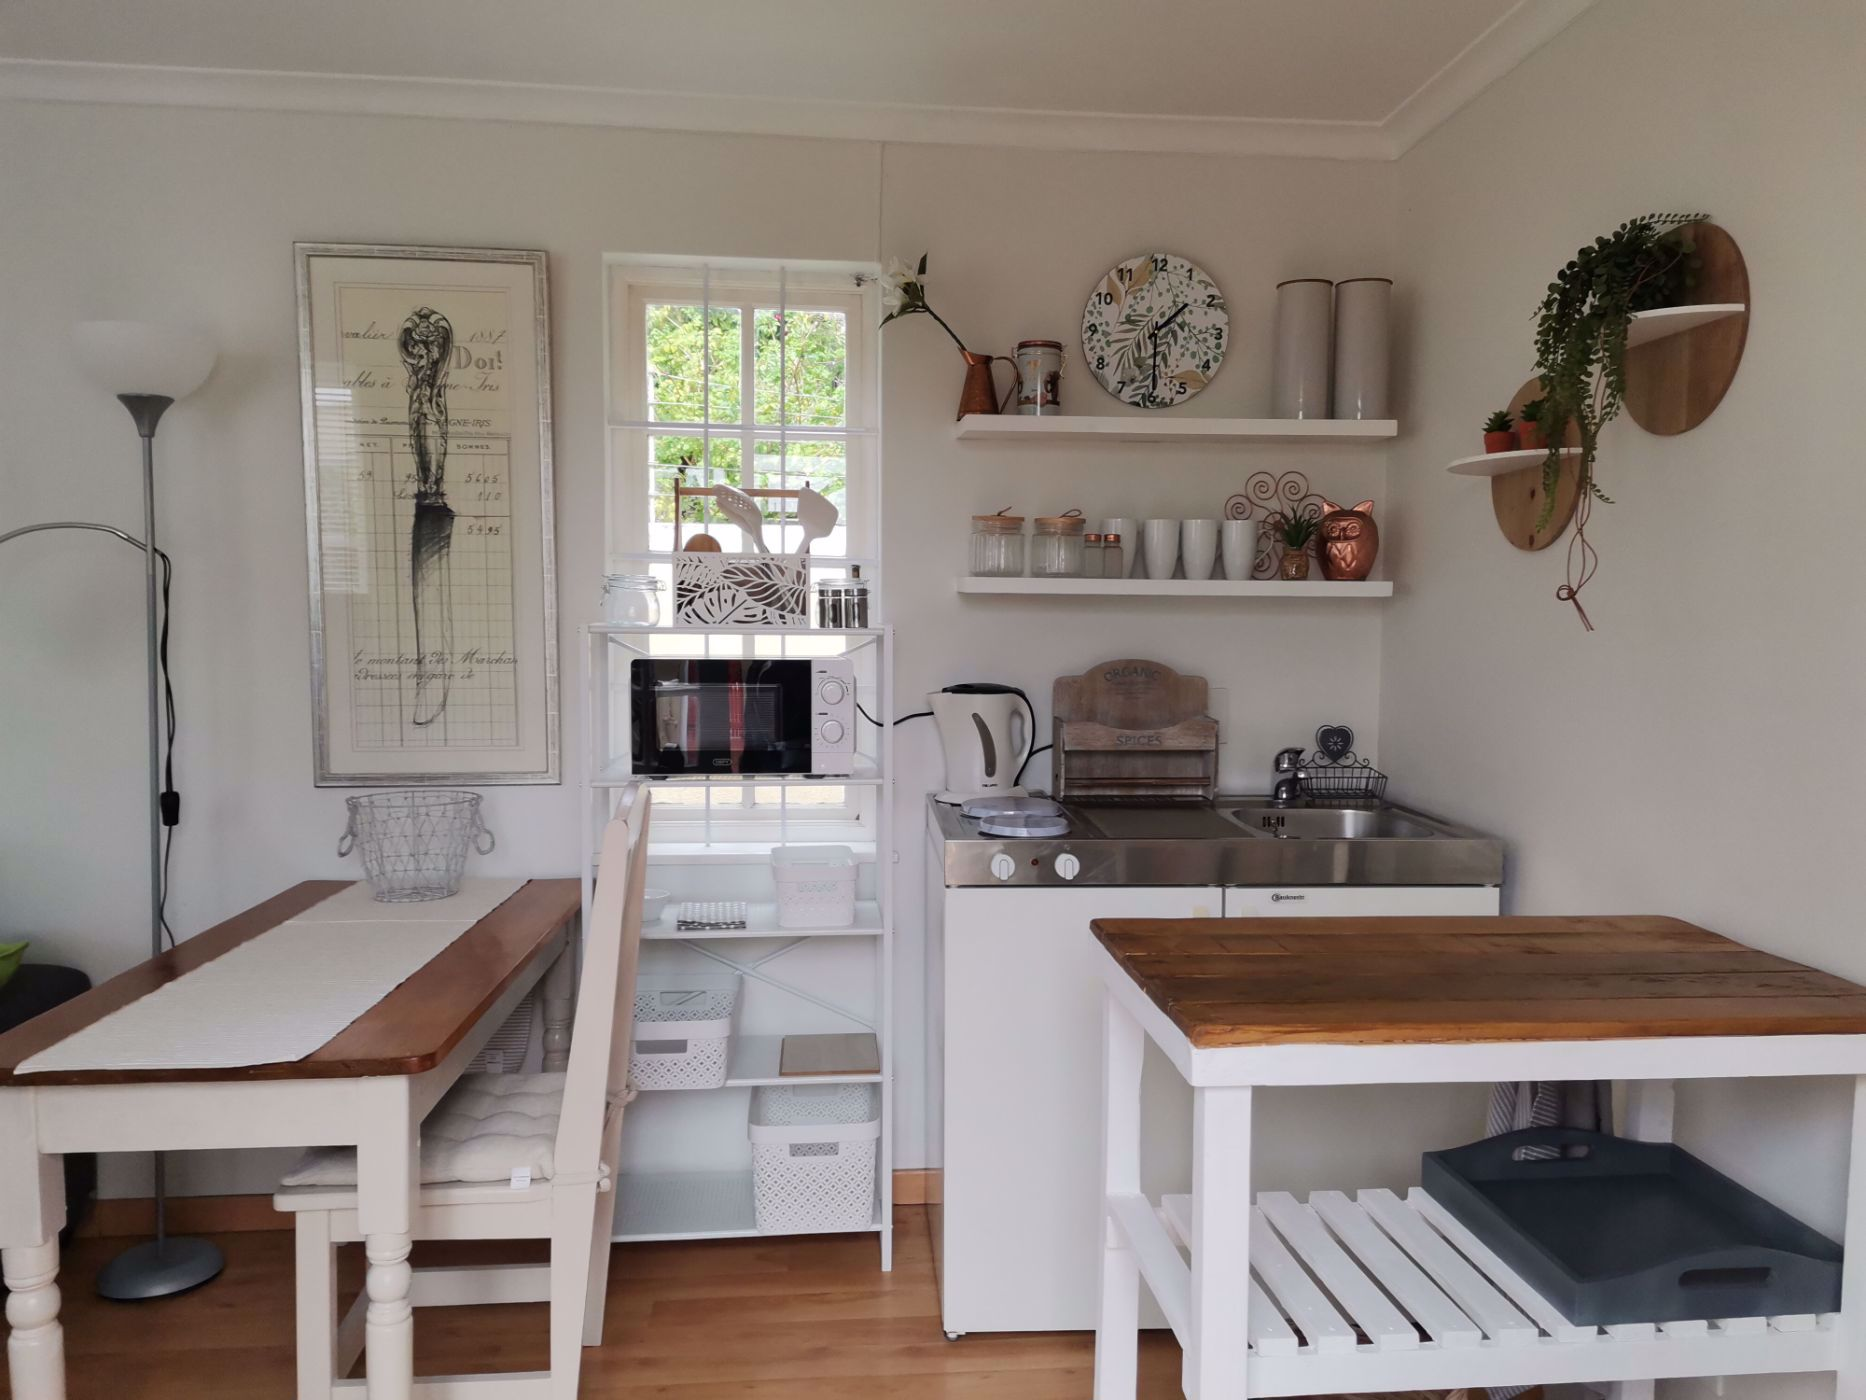 1 bedroom cottage to rent in Kenilworth (Cape Town)